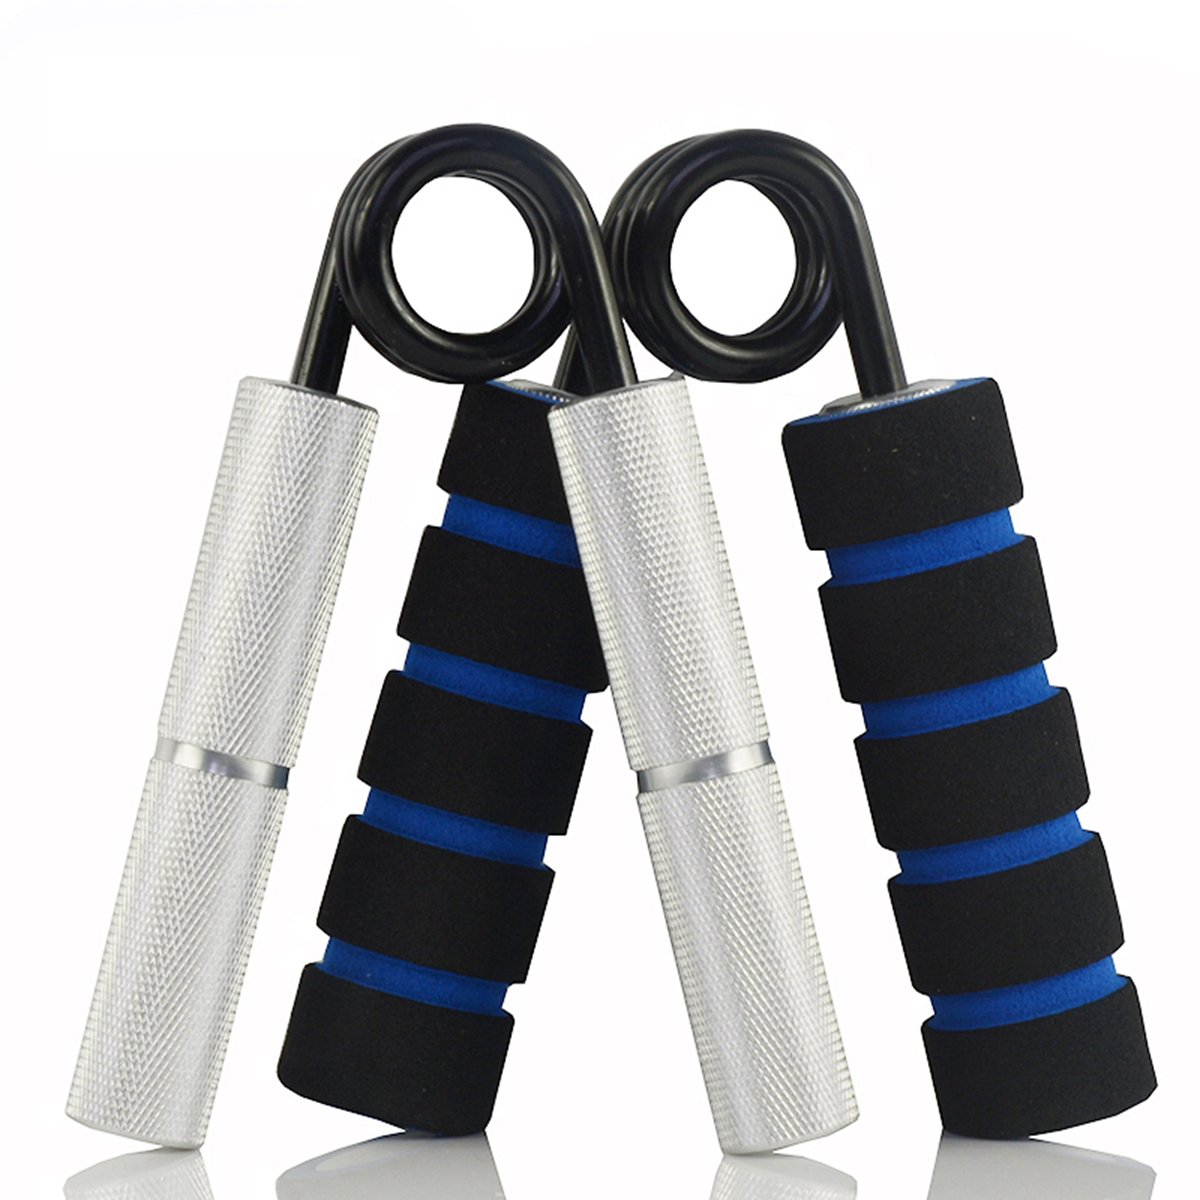 XINYI 100 Pounds to 350 Pounds New Hand Grips Increase Strength Spring Finger Pinch Expander Hand A Type Gripper Exerciser